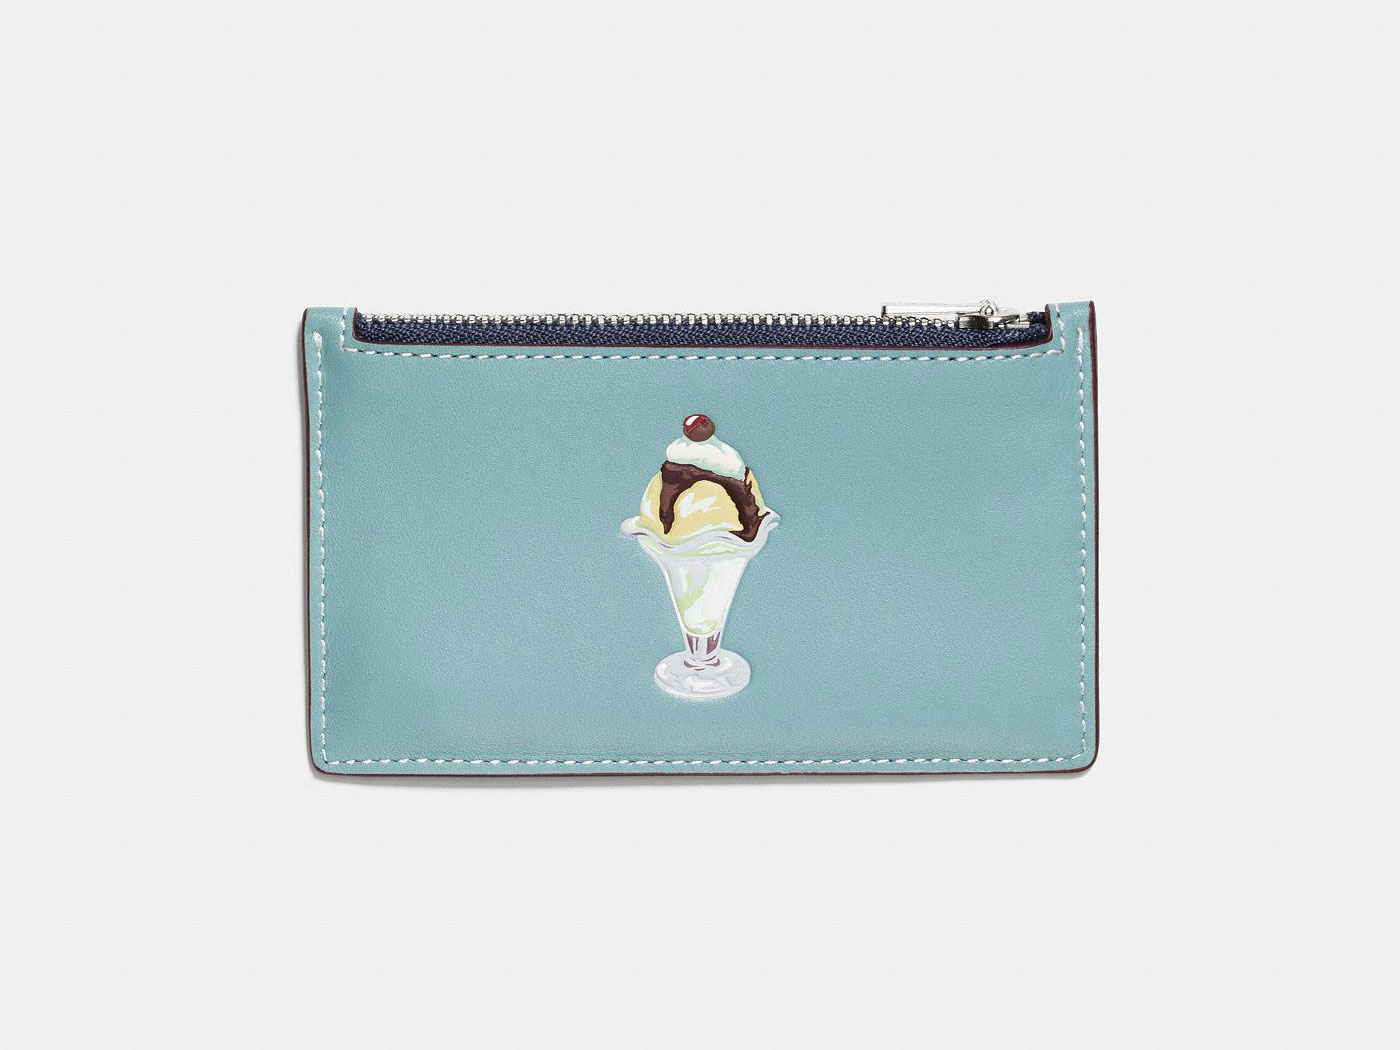 mini zip wallet from coach with ice cream